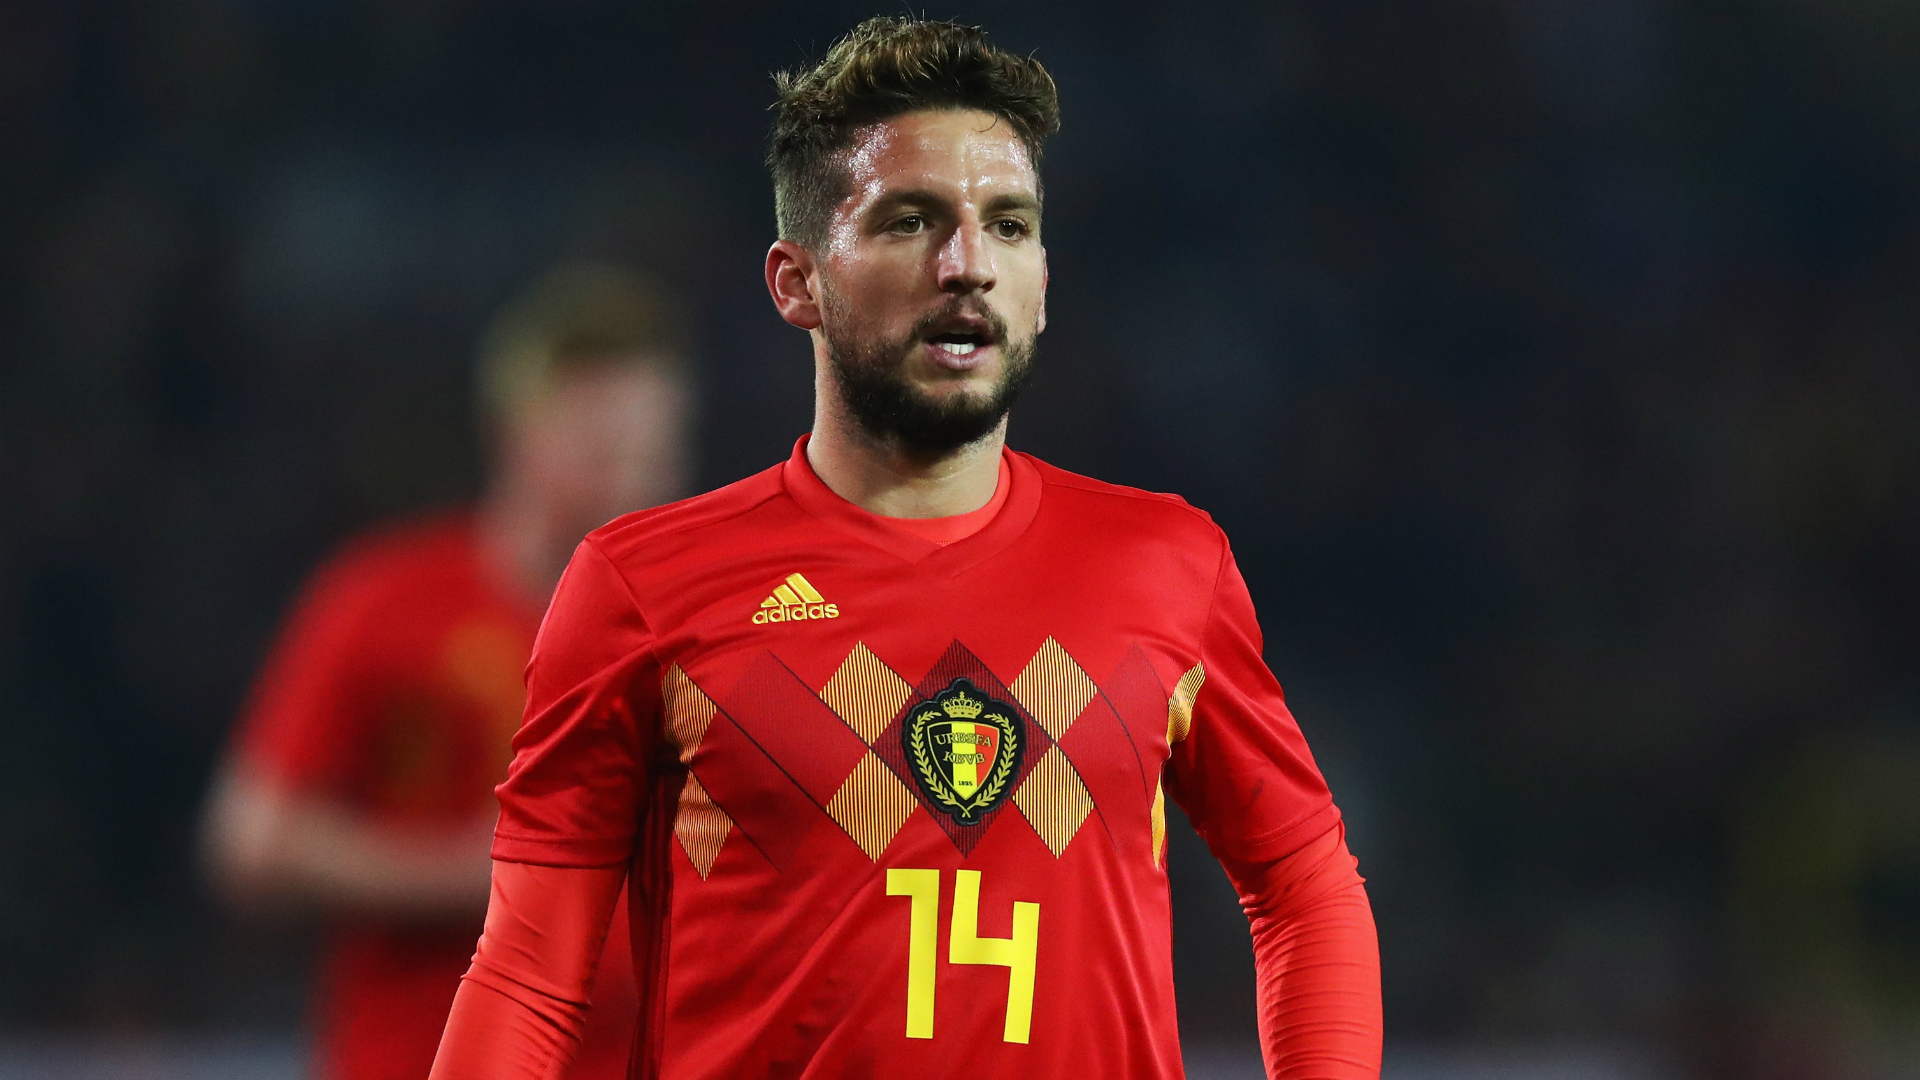 Dries Mertens scores screamer for Belgium against Panama